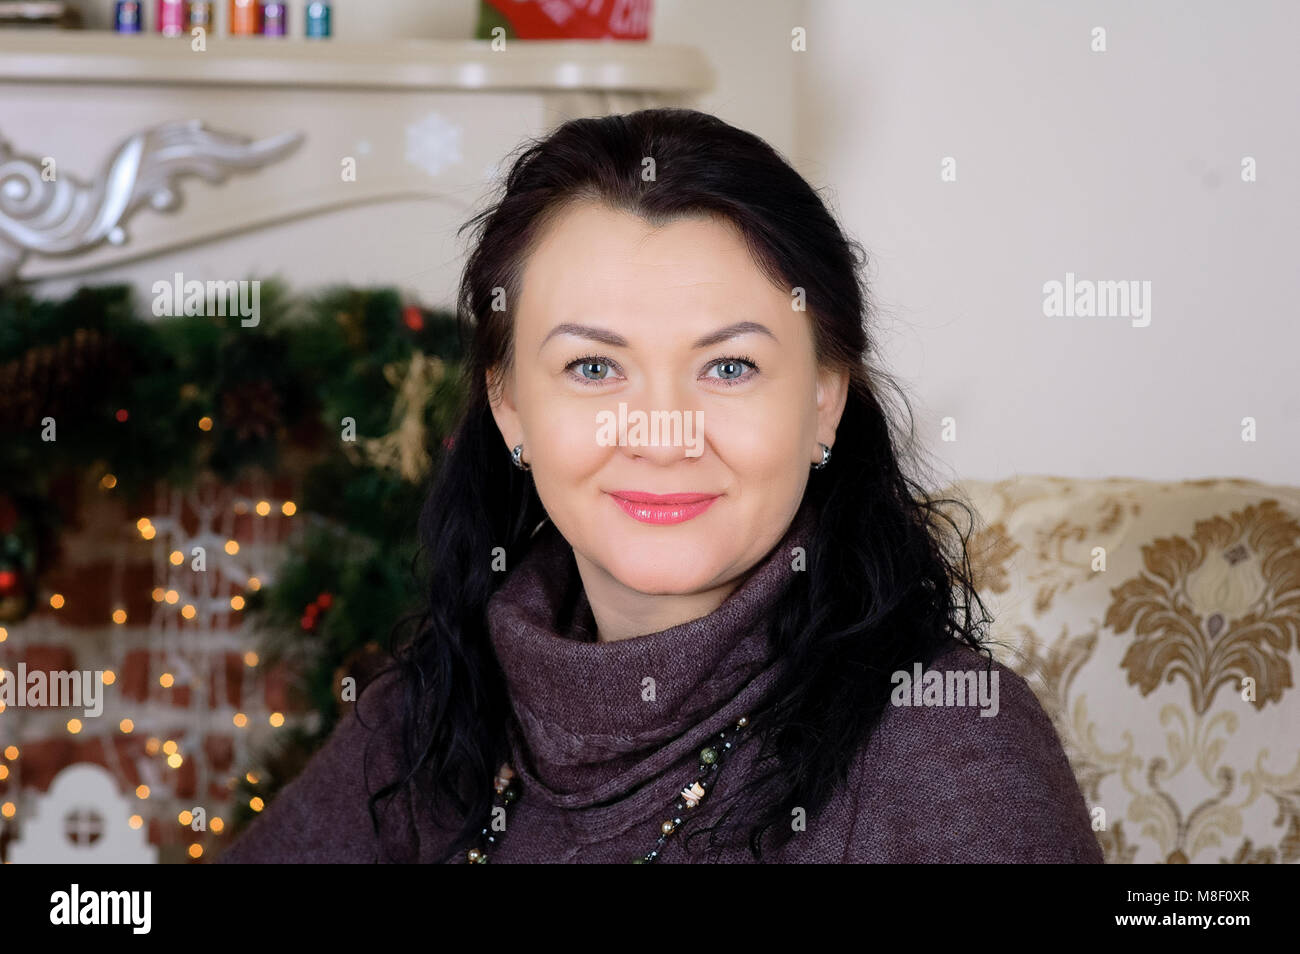 Beautiful brunette woman smiling, portrait. New Year's holidays - Stock Image